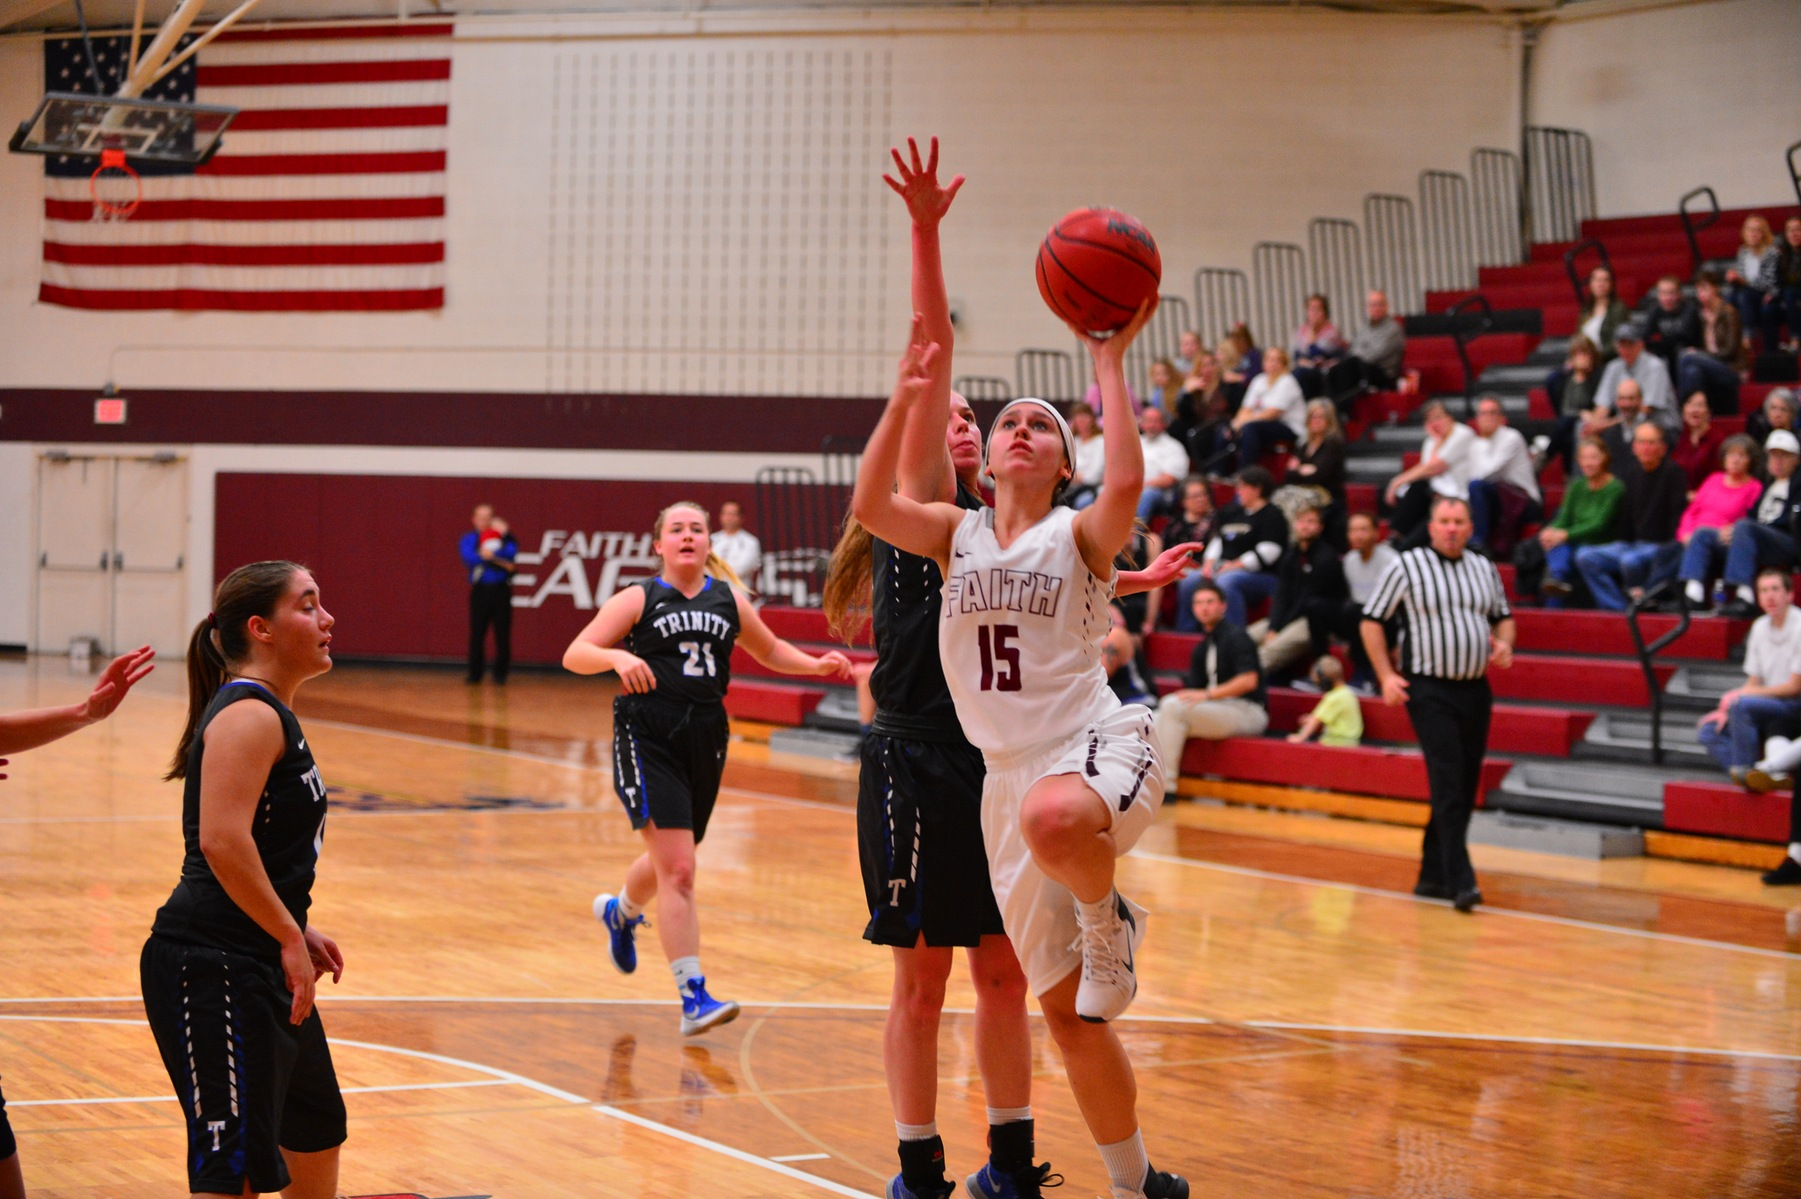 Lady Eagles Host Final Game of Semester